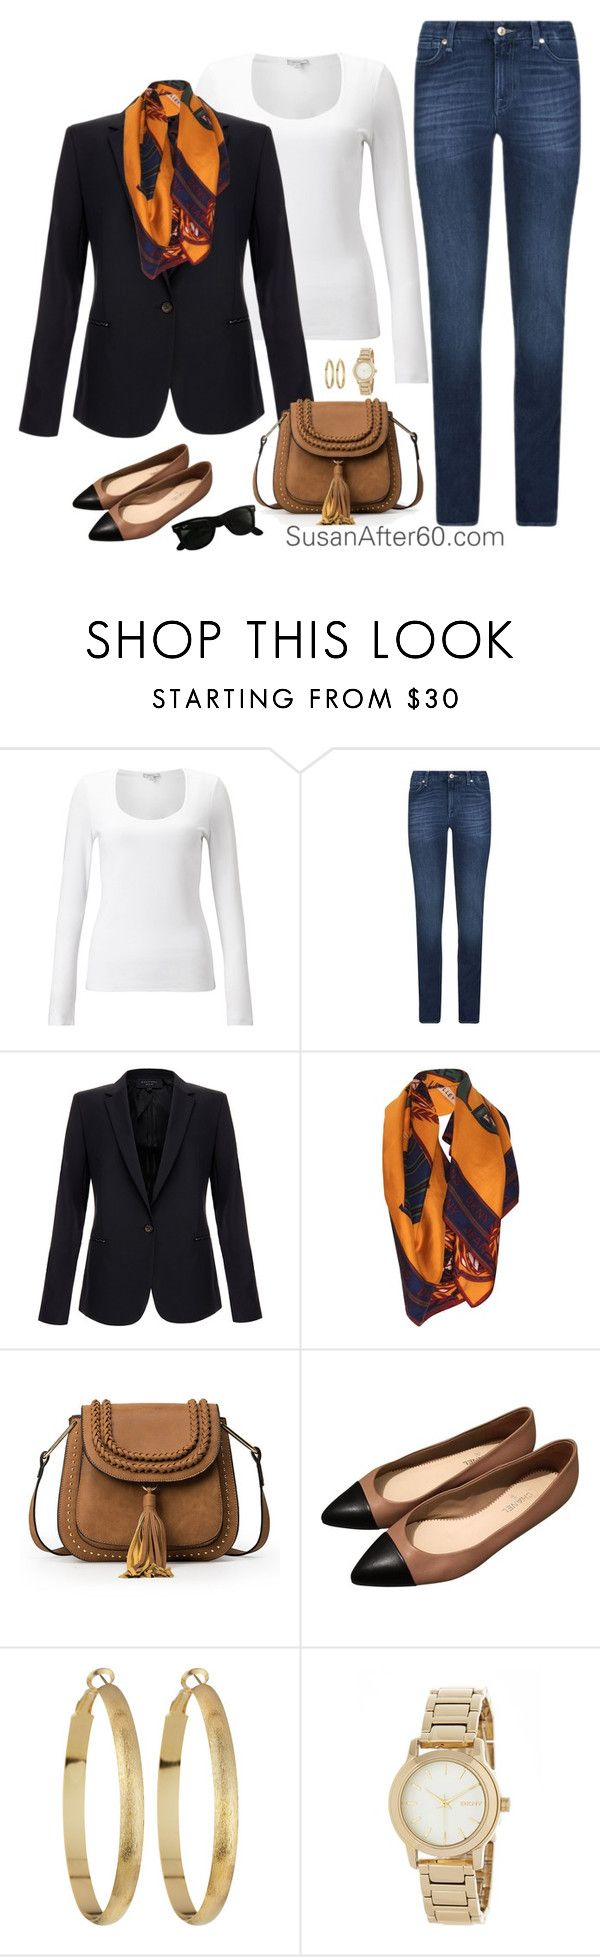 """Classics Forever"" by fiftynotfrumpy on Polyvore featuring Jigsaw, 7 For All Mankind, Equipment, DKNY, Chanel, Panacea and Ray-Ban"